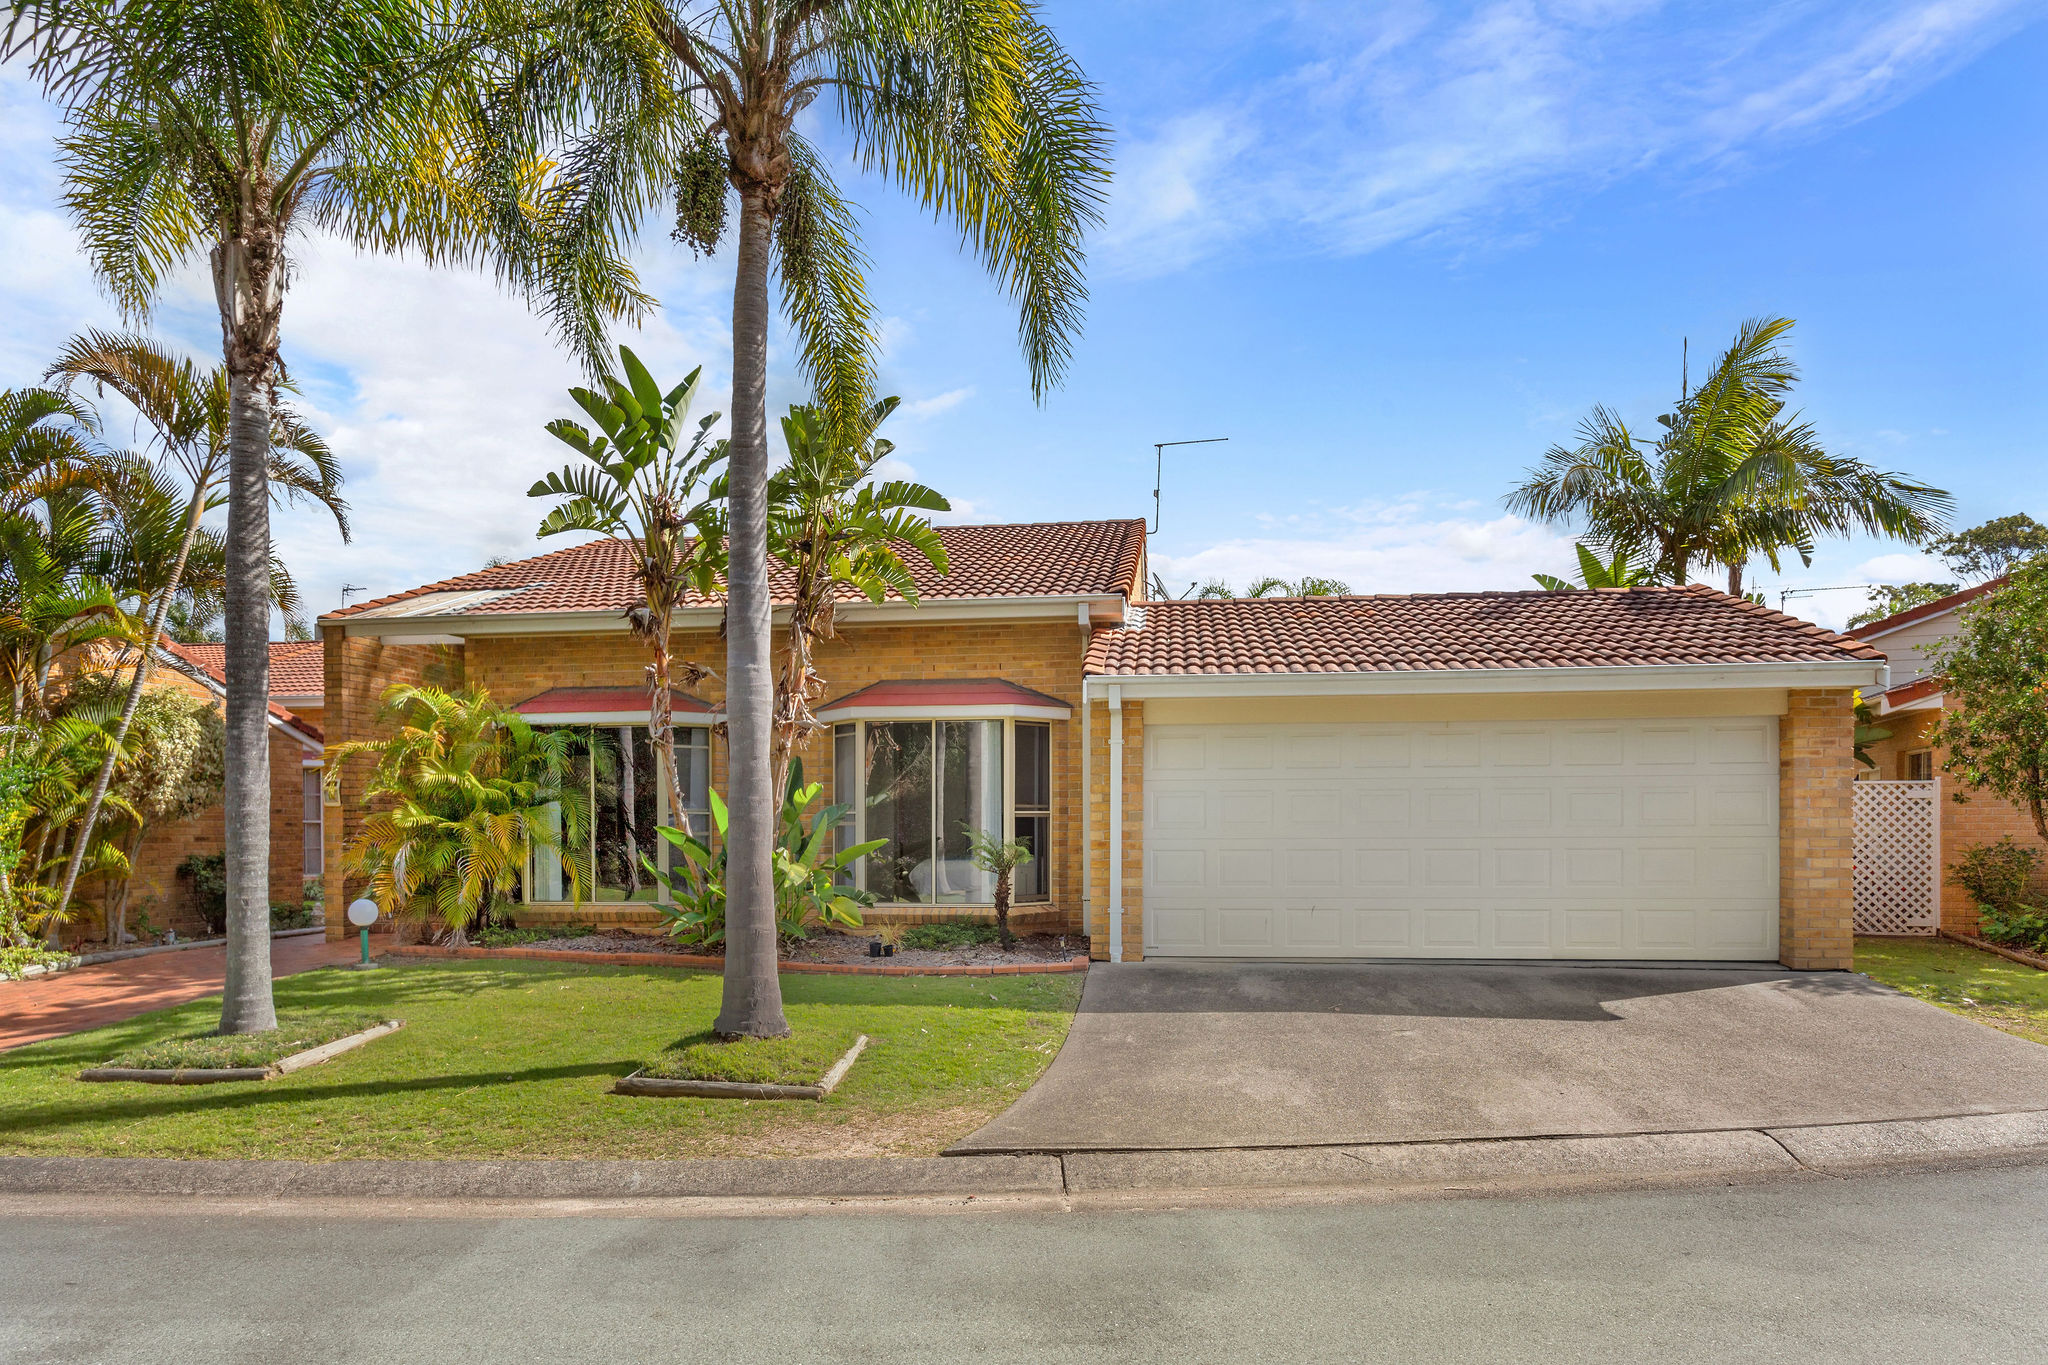 Buyer Review - Buying realestate with Carlie was a pleasant experience for my wife and my self!